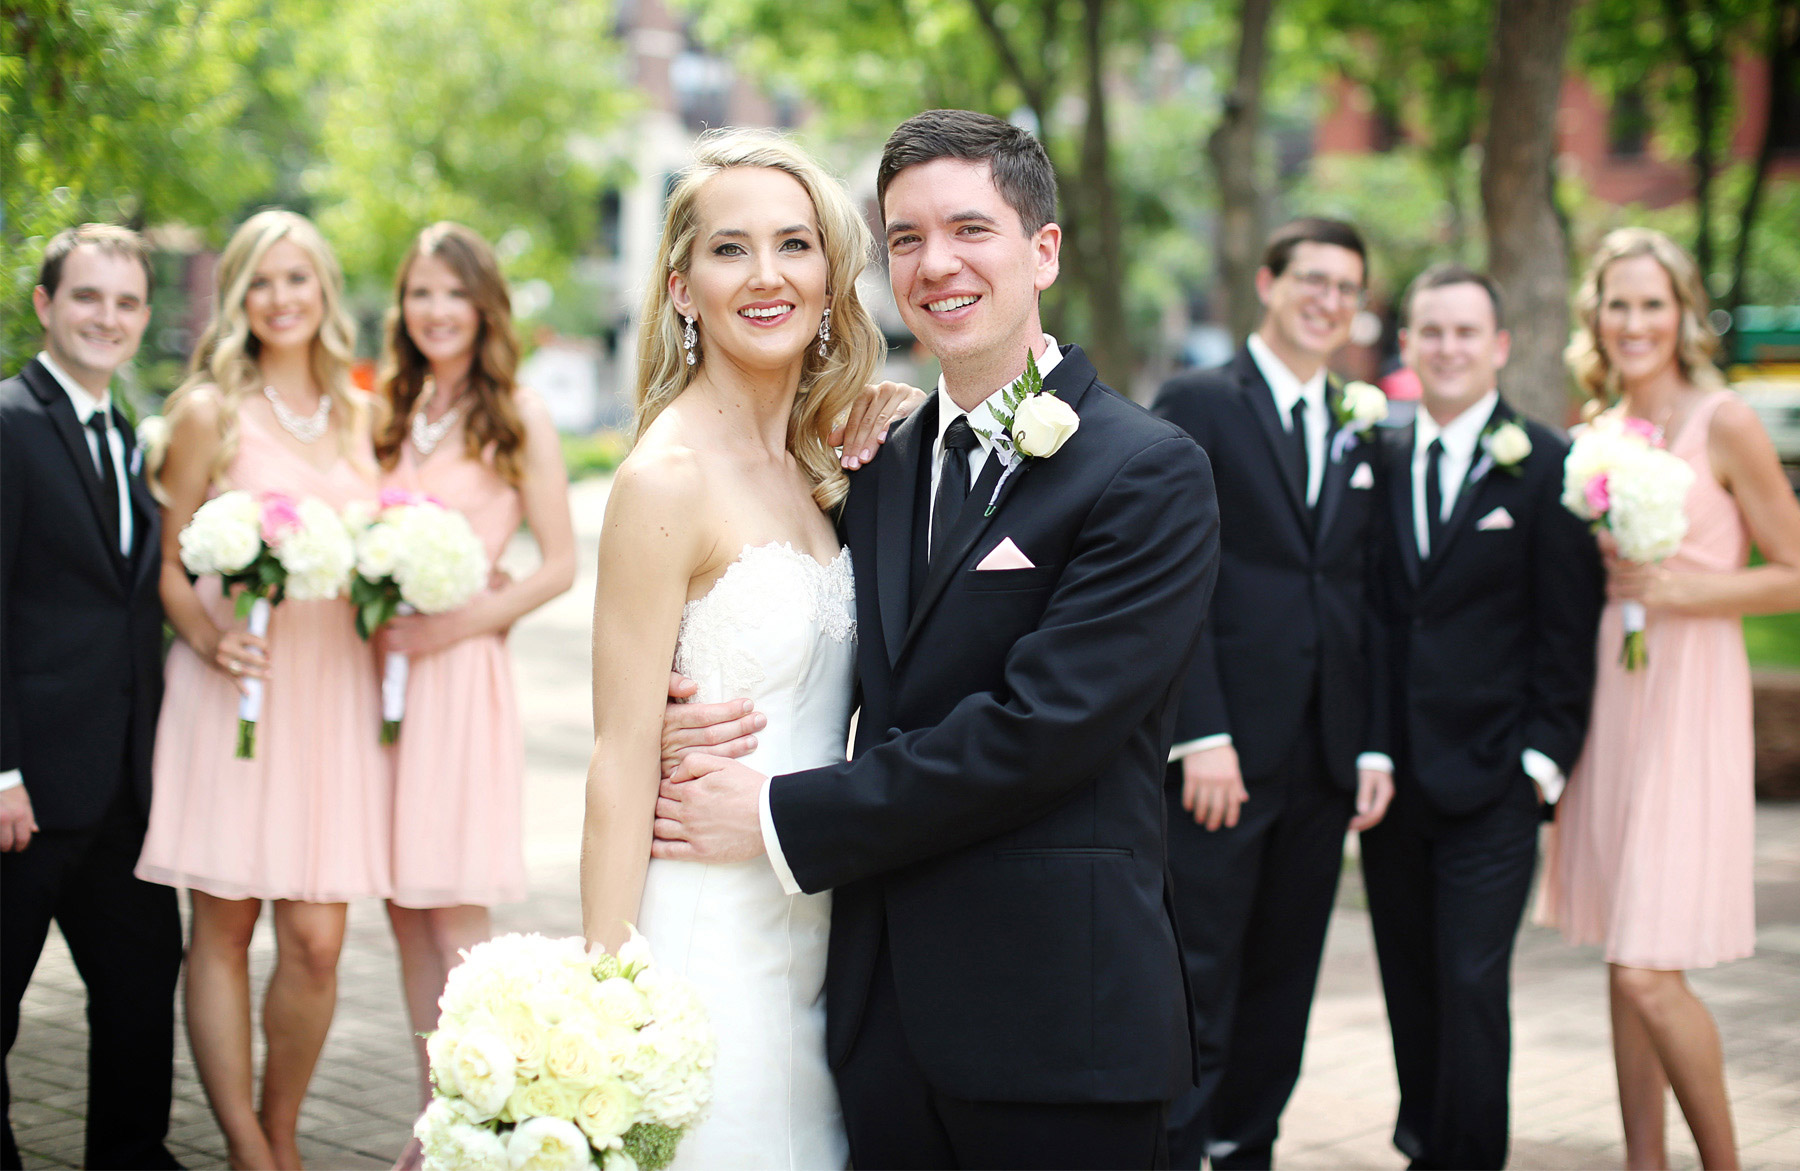 09-Saint-Paul-Minnesota-Wedding-Photographer-by-Andrew-Vick-Photography-Summer-Bride-Groom-Bridal-Party-Bridesmaids-Groomsmen-Laura-and-Tim.jpg